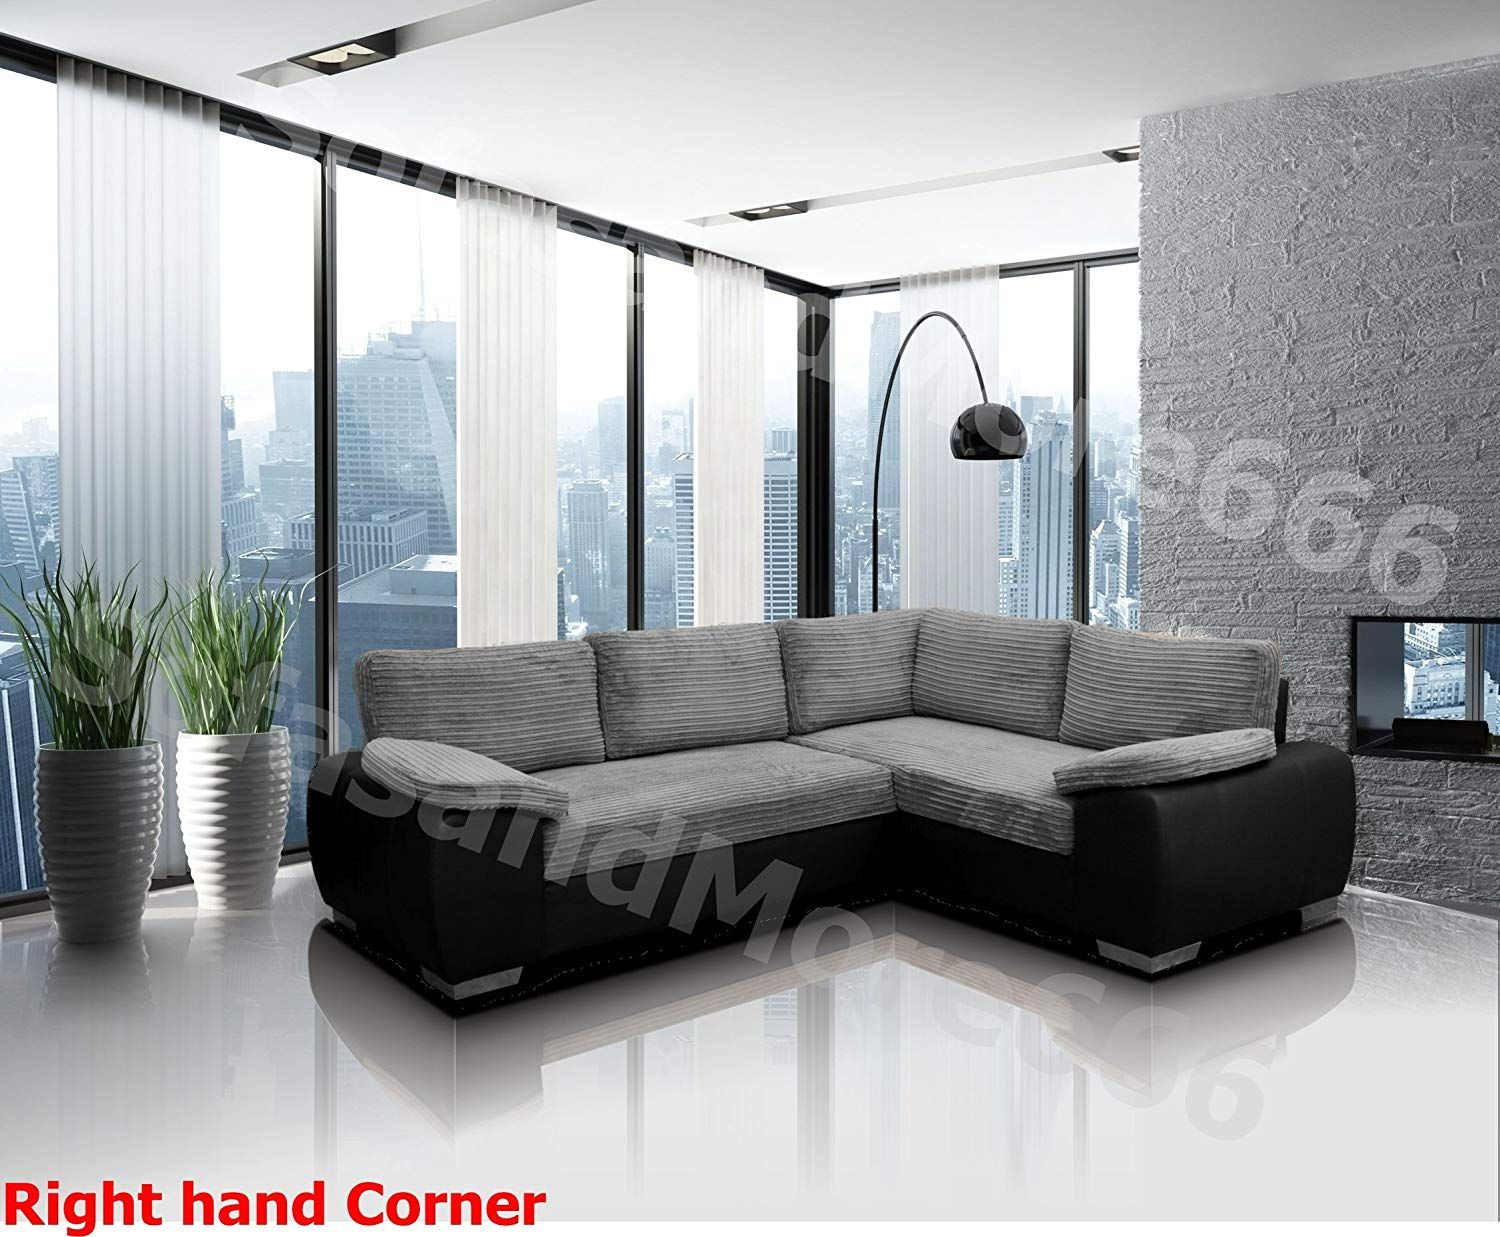 Enzo Corner Sofa Bed With Storage Jumbo Cord Fabric Leather Right Hand Side Orientation Corner Sofa Bed With Storage Leather Corner Sofa Corner Sofa Bed